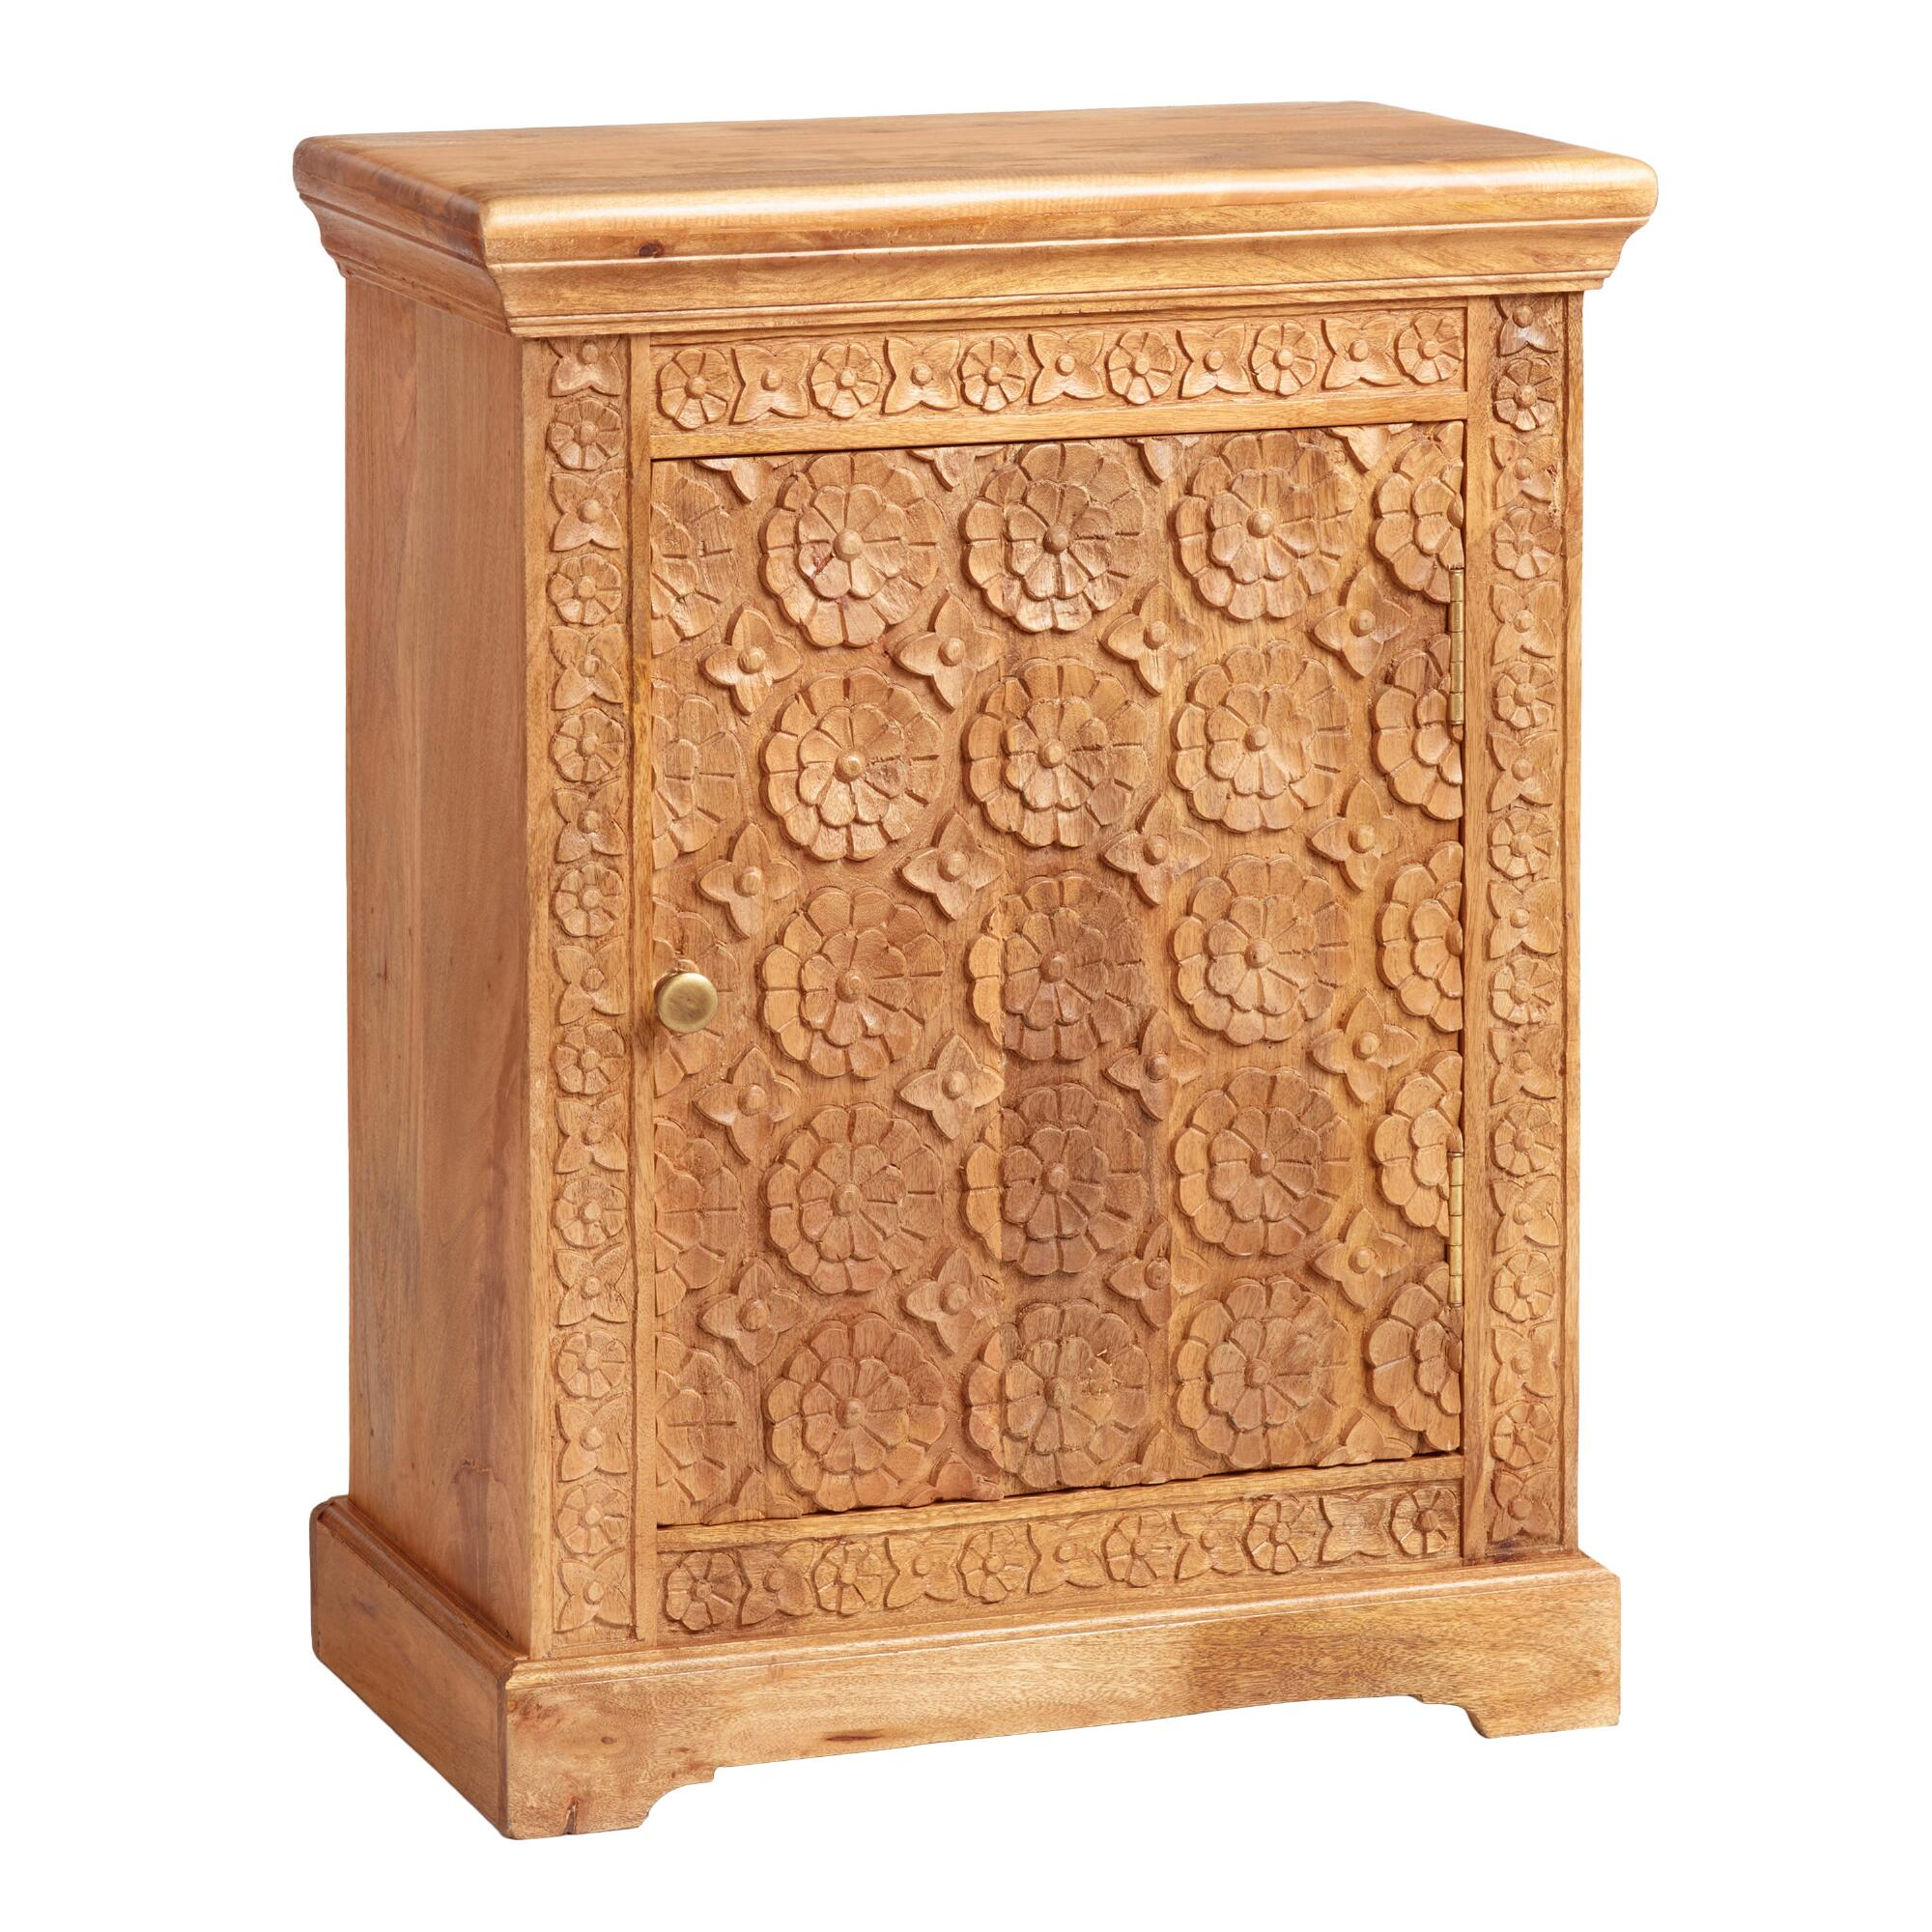 Natural Floral Carved Wood Cabinet by World Market